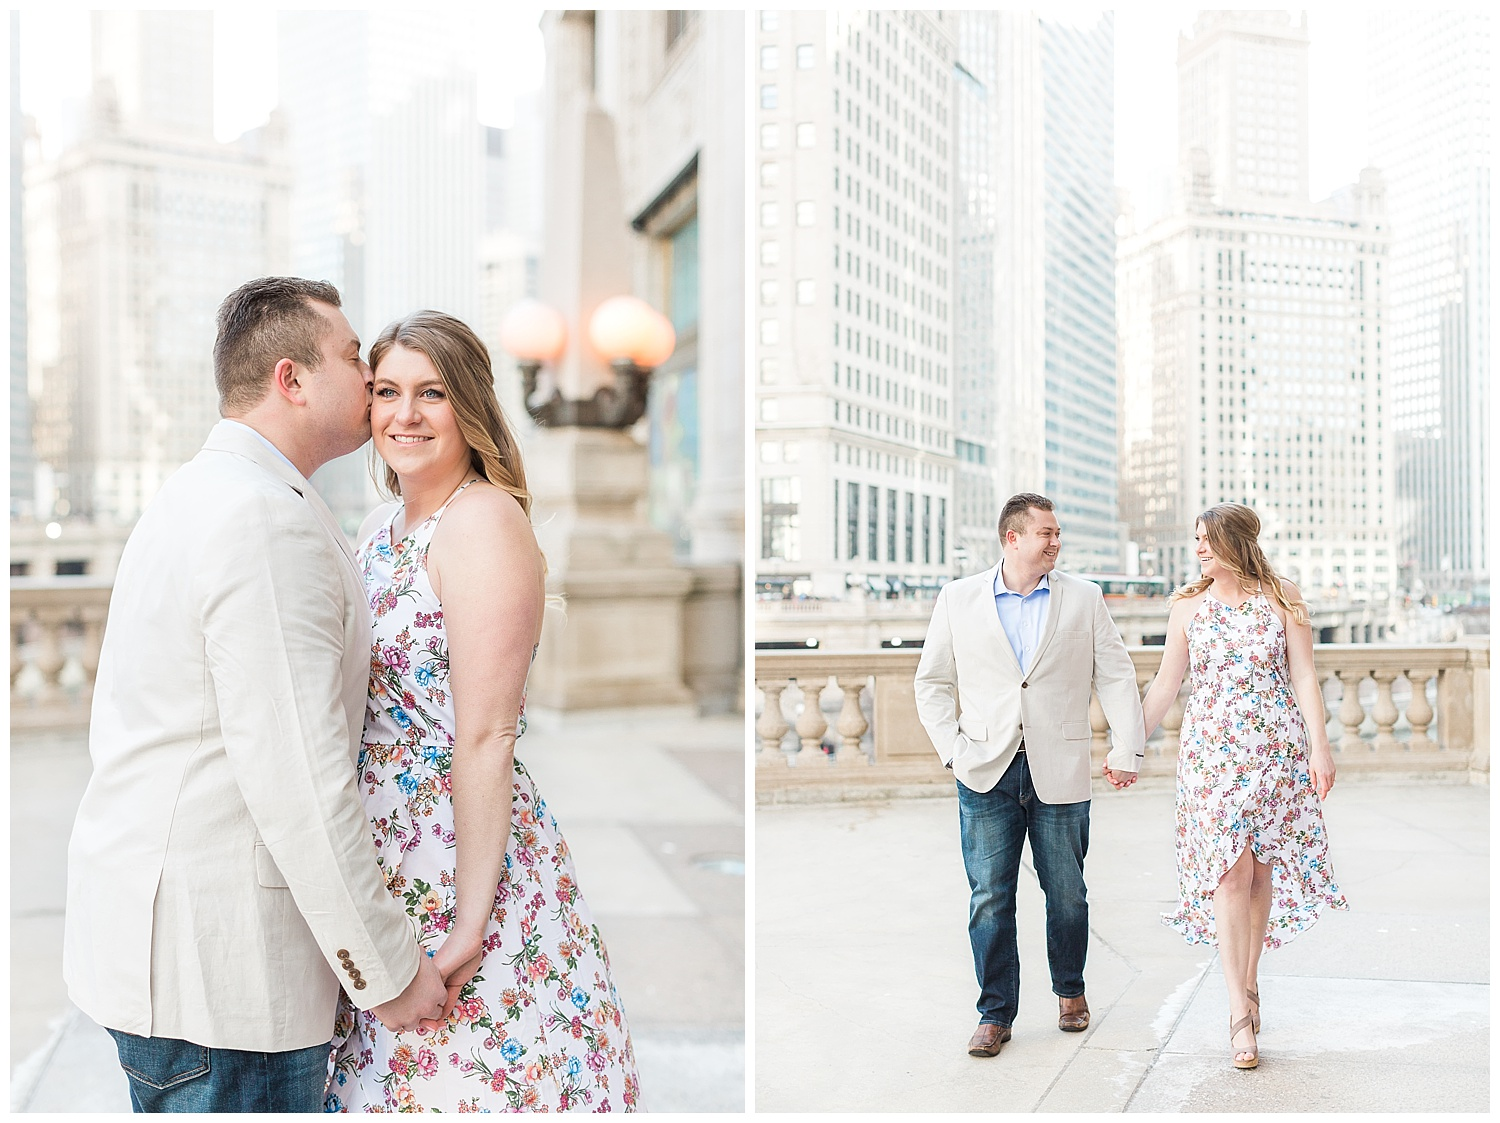 romantic-chicago-wedding-photographer-blush-dress_0044.jpg